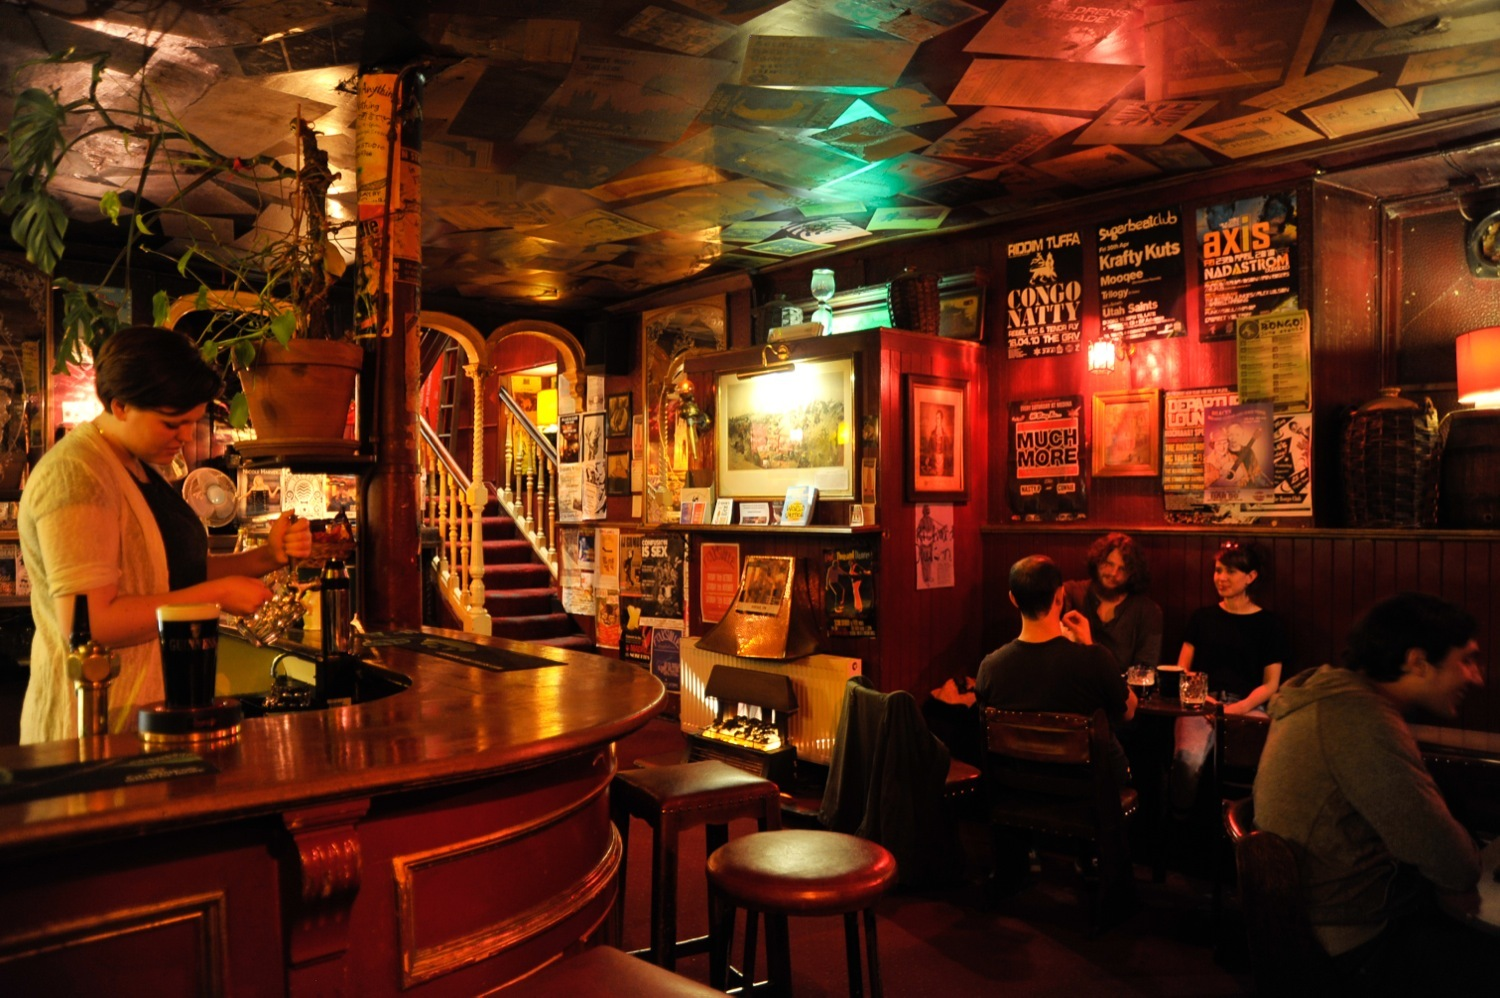 Waverley Bar, Pubs, Edinburgh